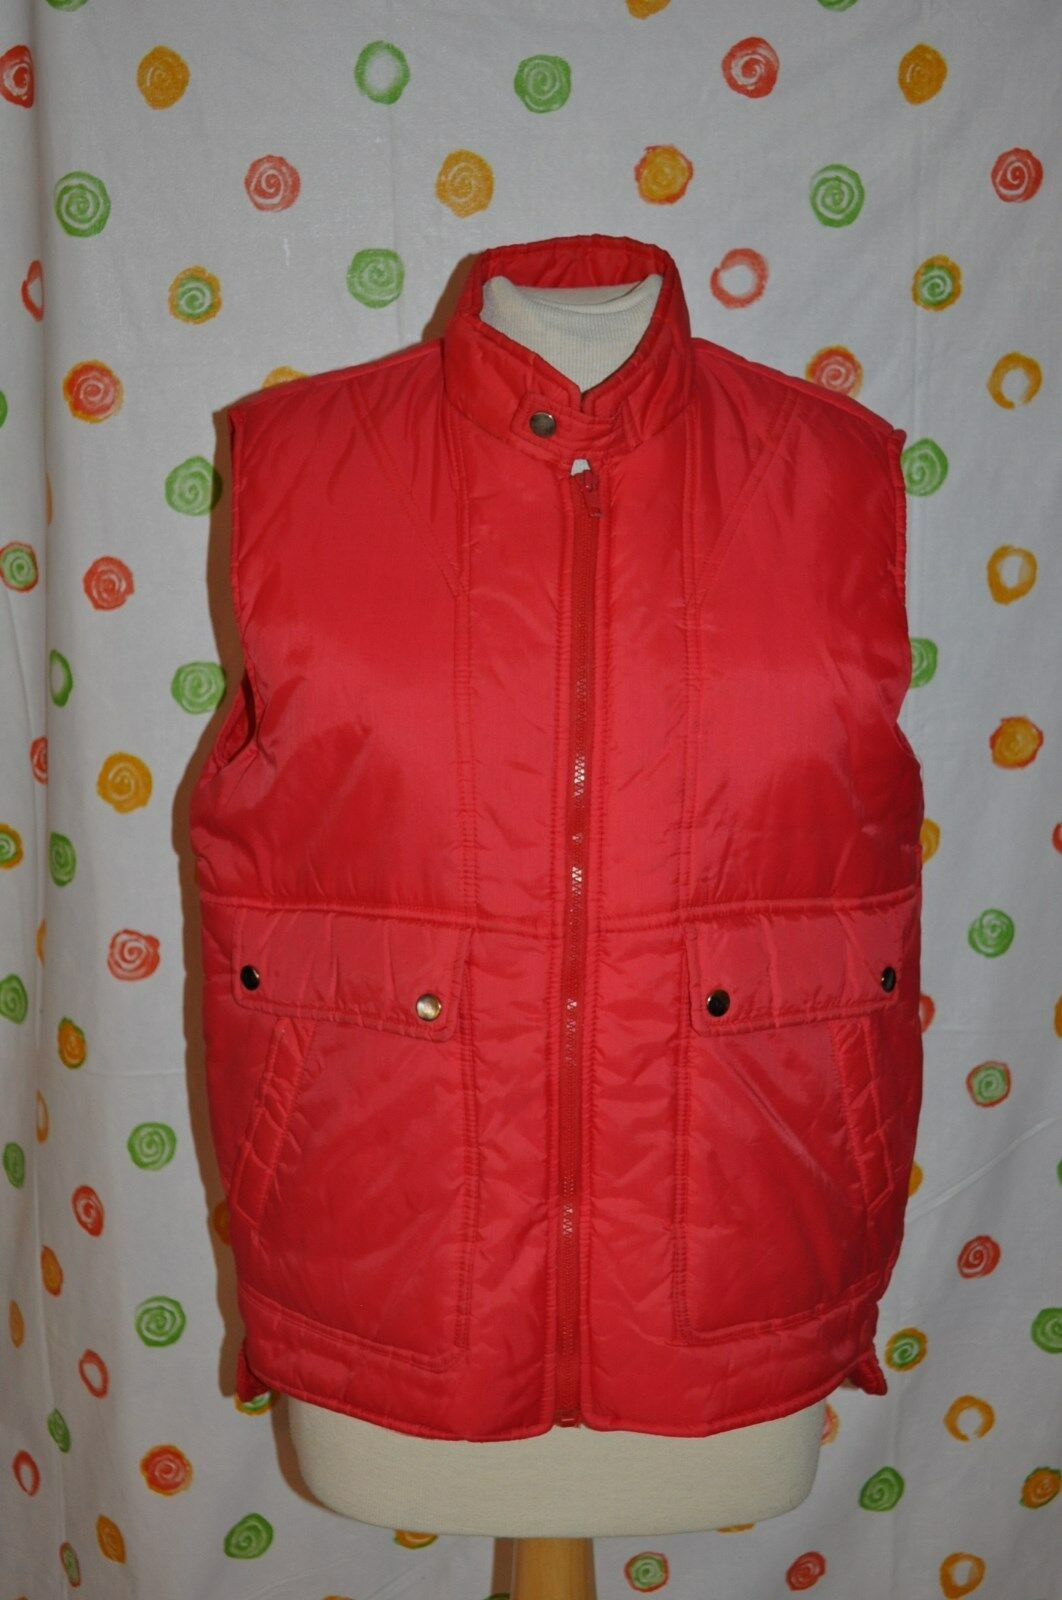 ALPINE  SKI INSULATED MENS M RED PUFF WINTER SNOW hunt ice fish Mcfly VEST EUC  a lot of surprises